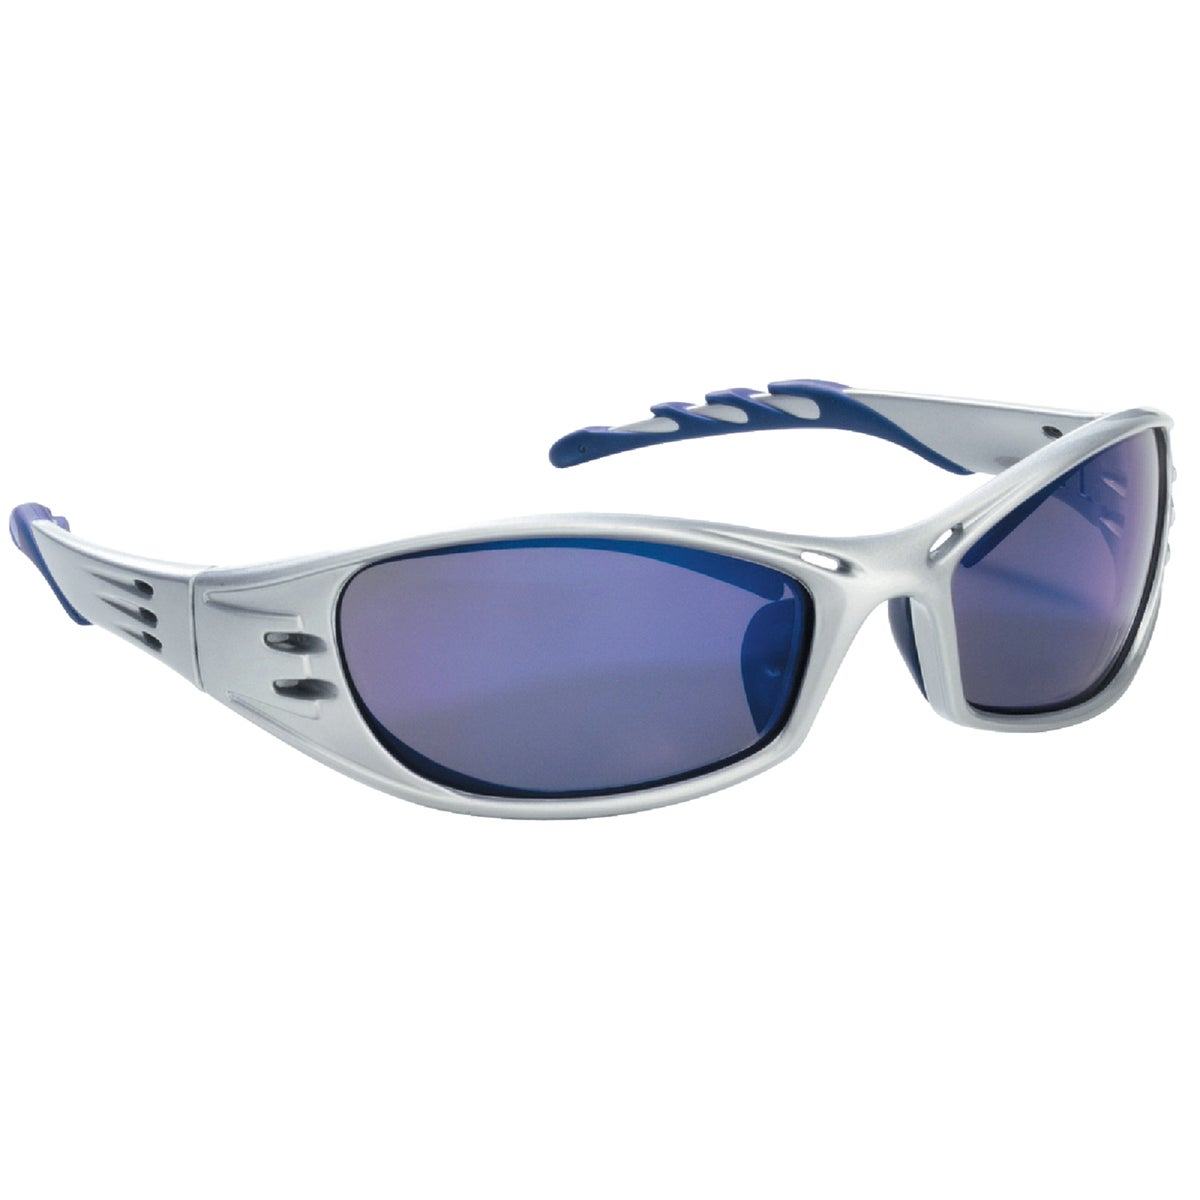 BLUE SAFETY SUNGLASSES